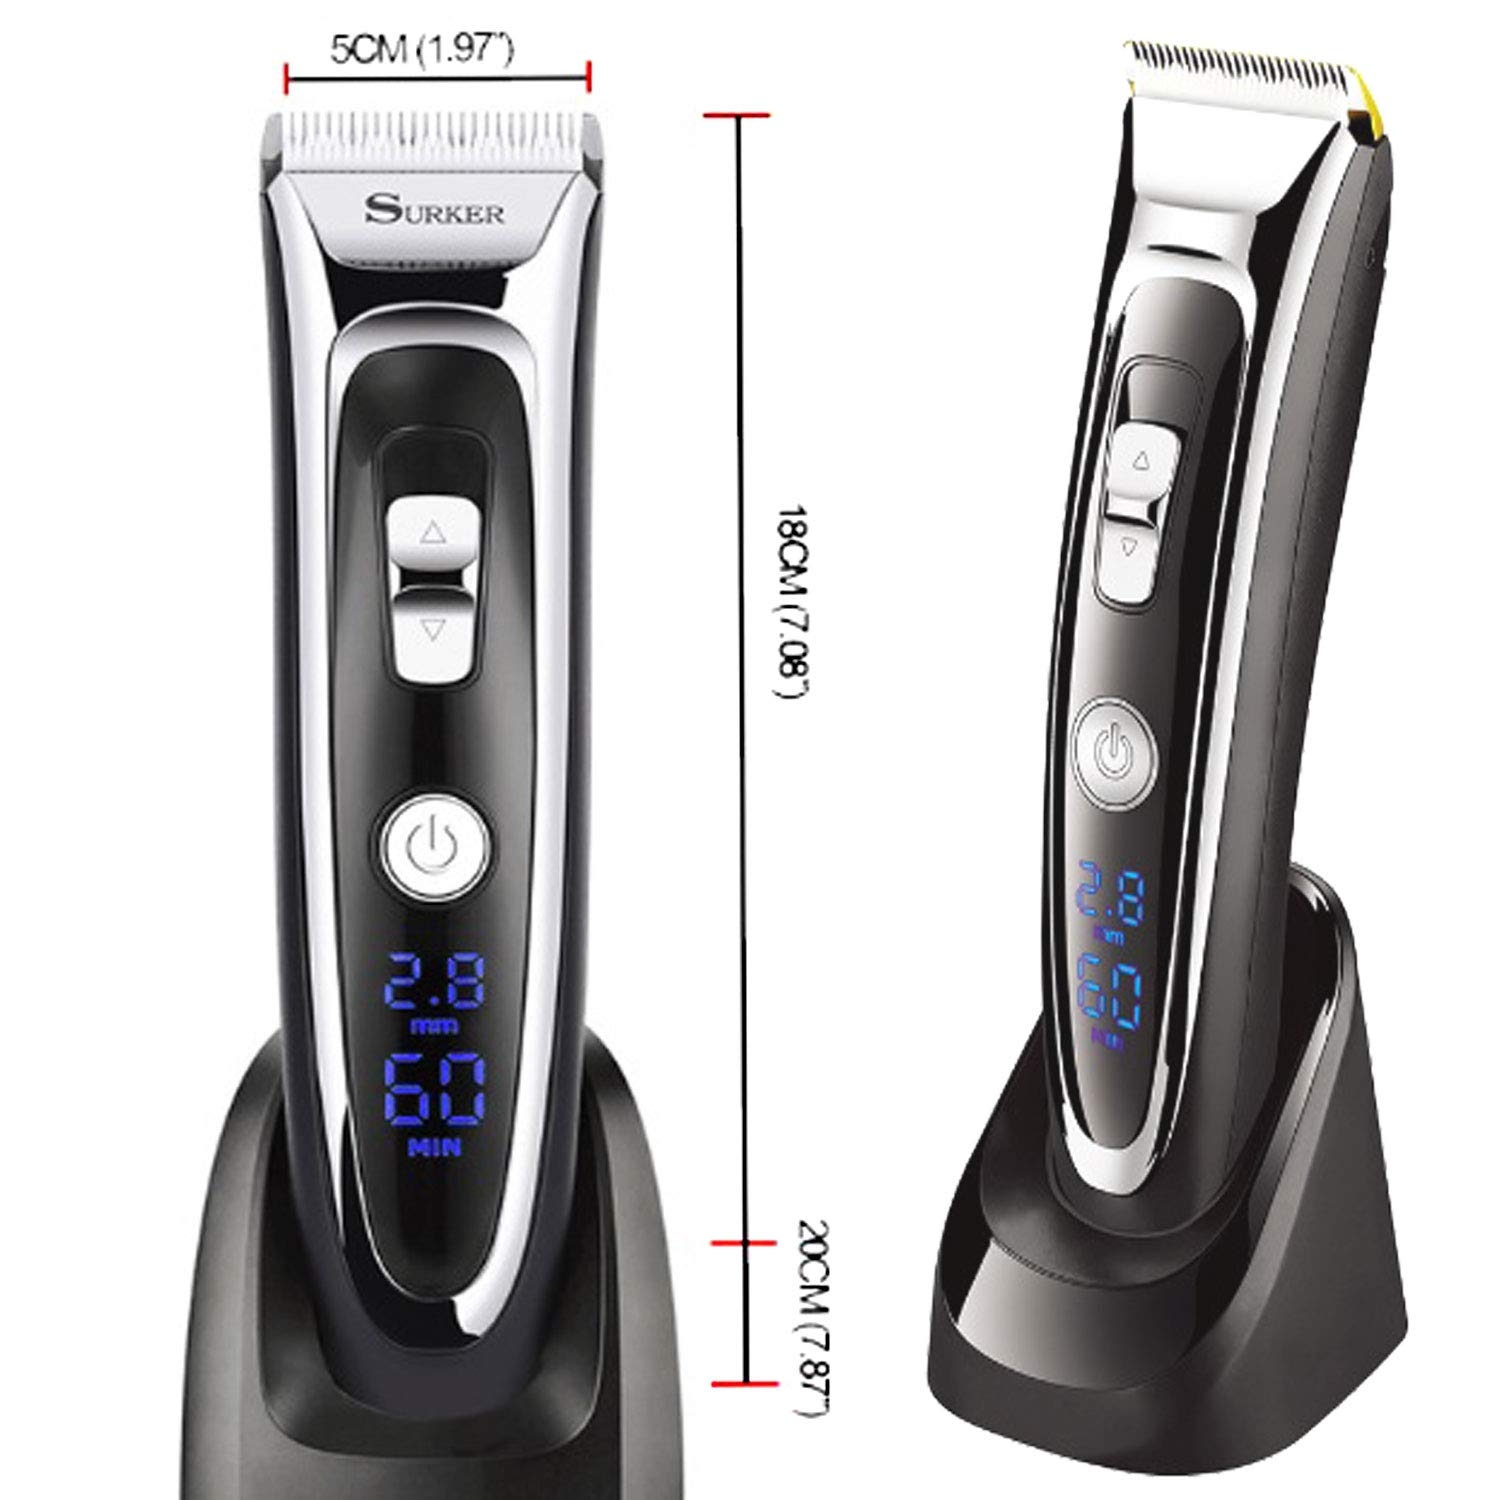 Professional Hair Clipper Cordless Clippers Hair Trimmer Beard Shaver Electric Haircut Kit Ceramic Blade Waterproof Rechargeable Battery LED Display for Men and Family Use with 2 Barber Scissors and 1 Barber Cape Cloth